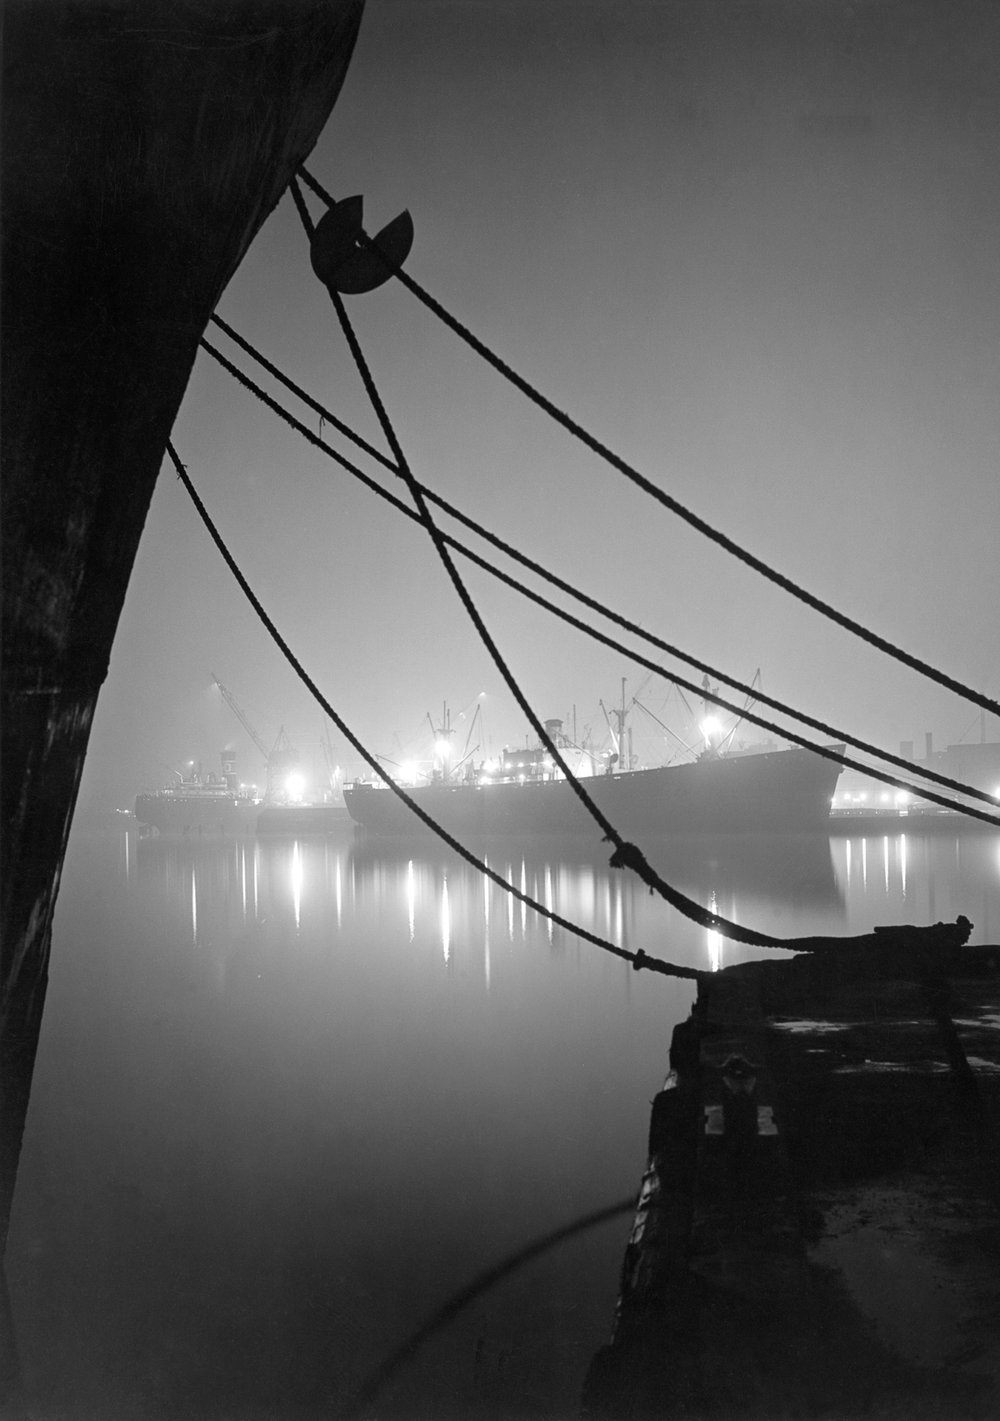 Baltimore Harbor, 1949